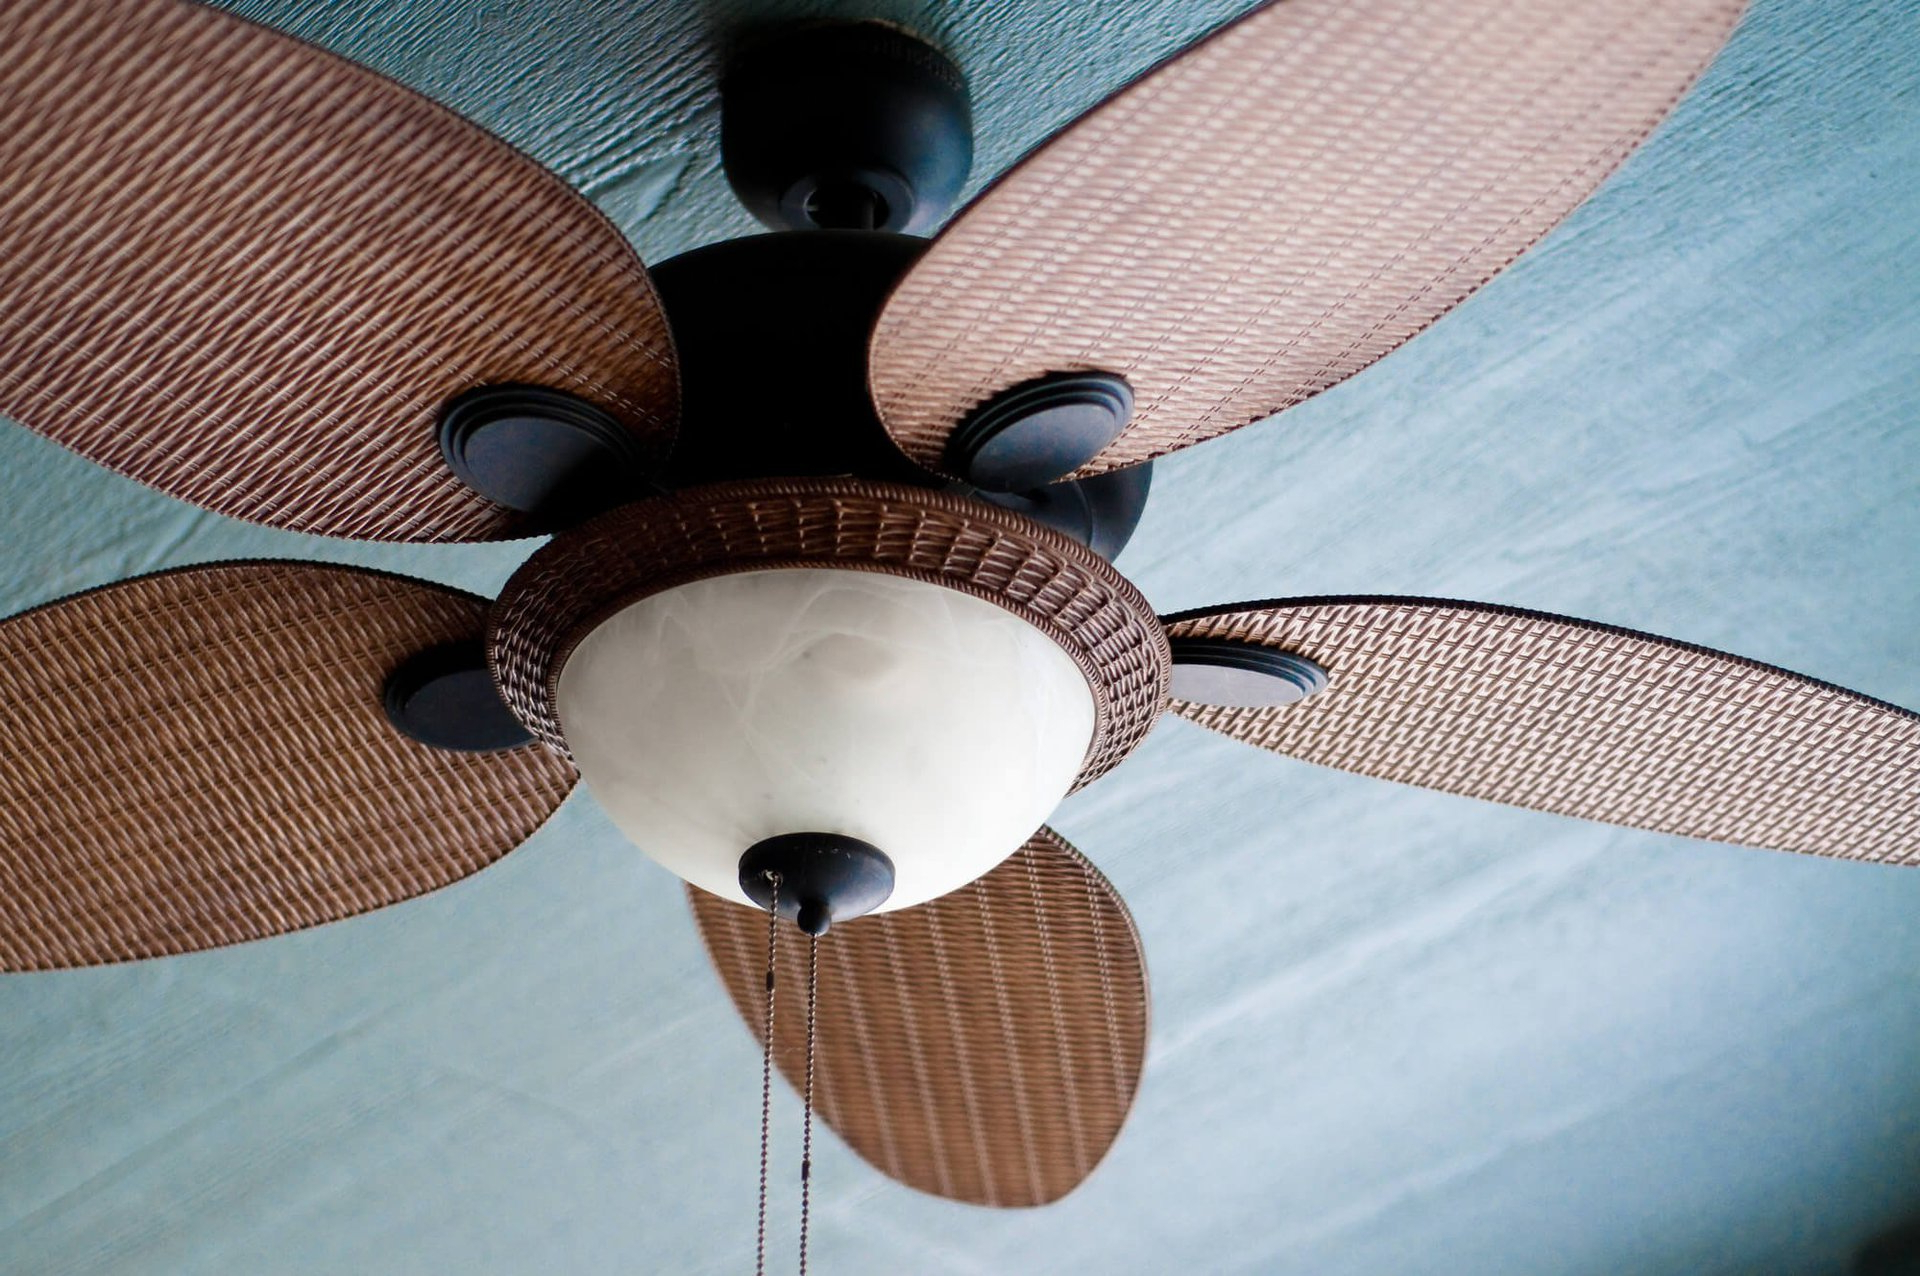 Widely Used A Simple Way To Cool Your Home That Works (View 15 of 20)